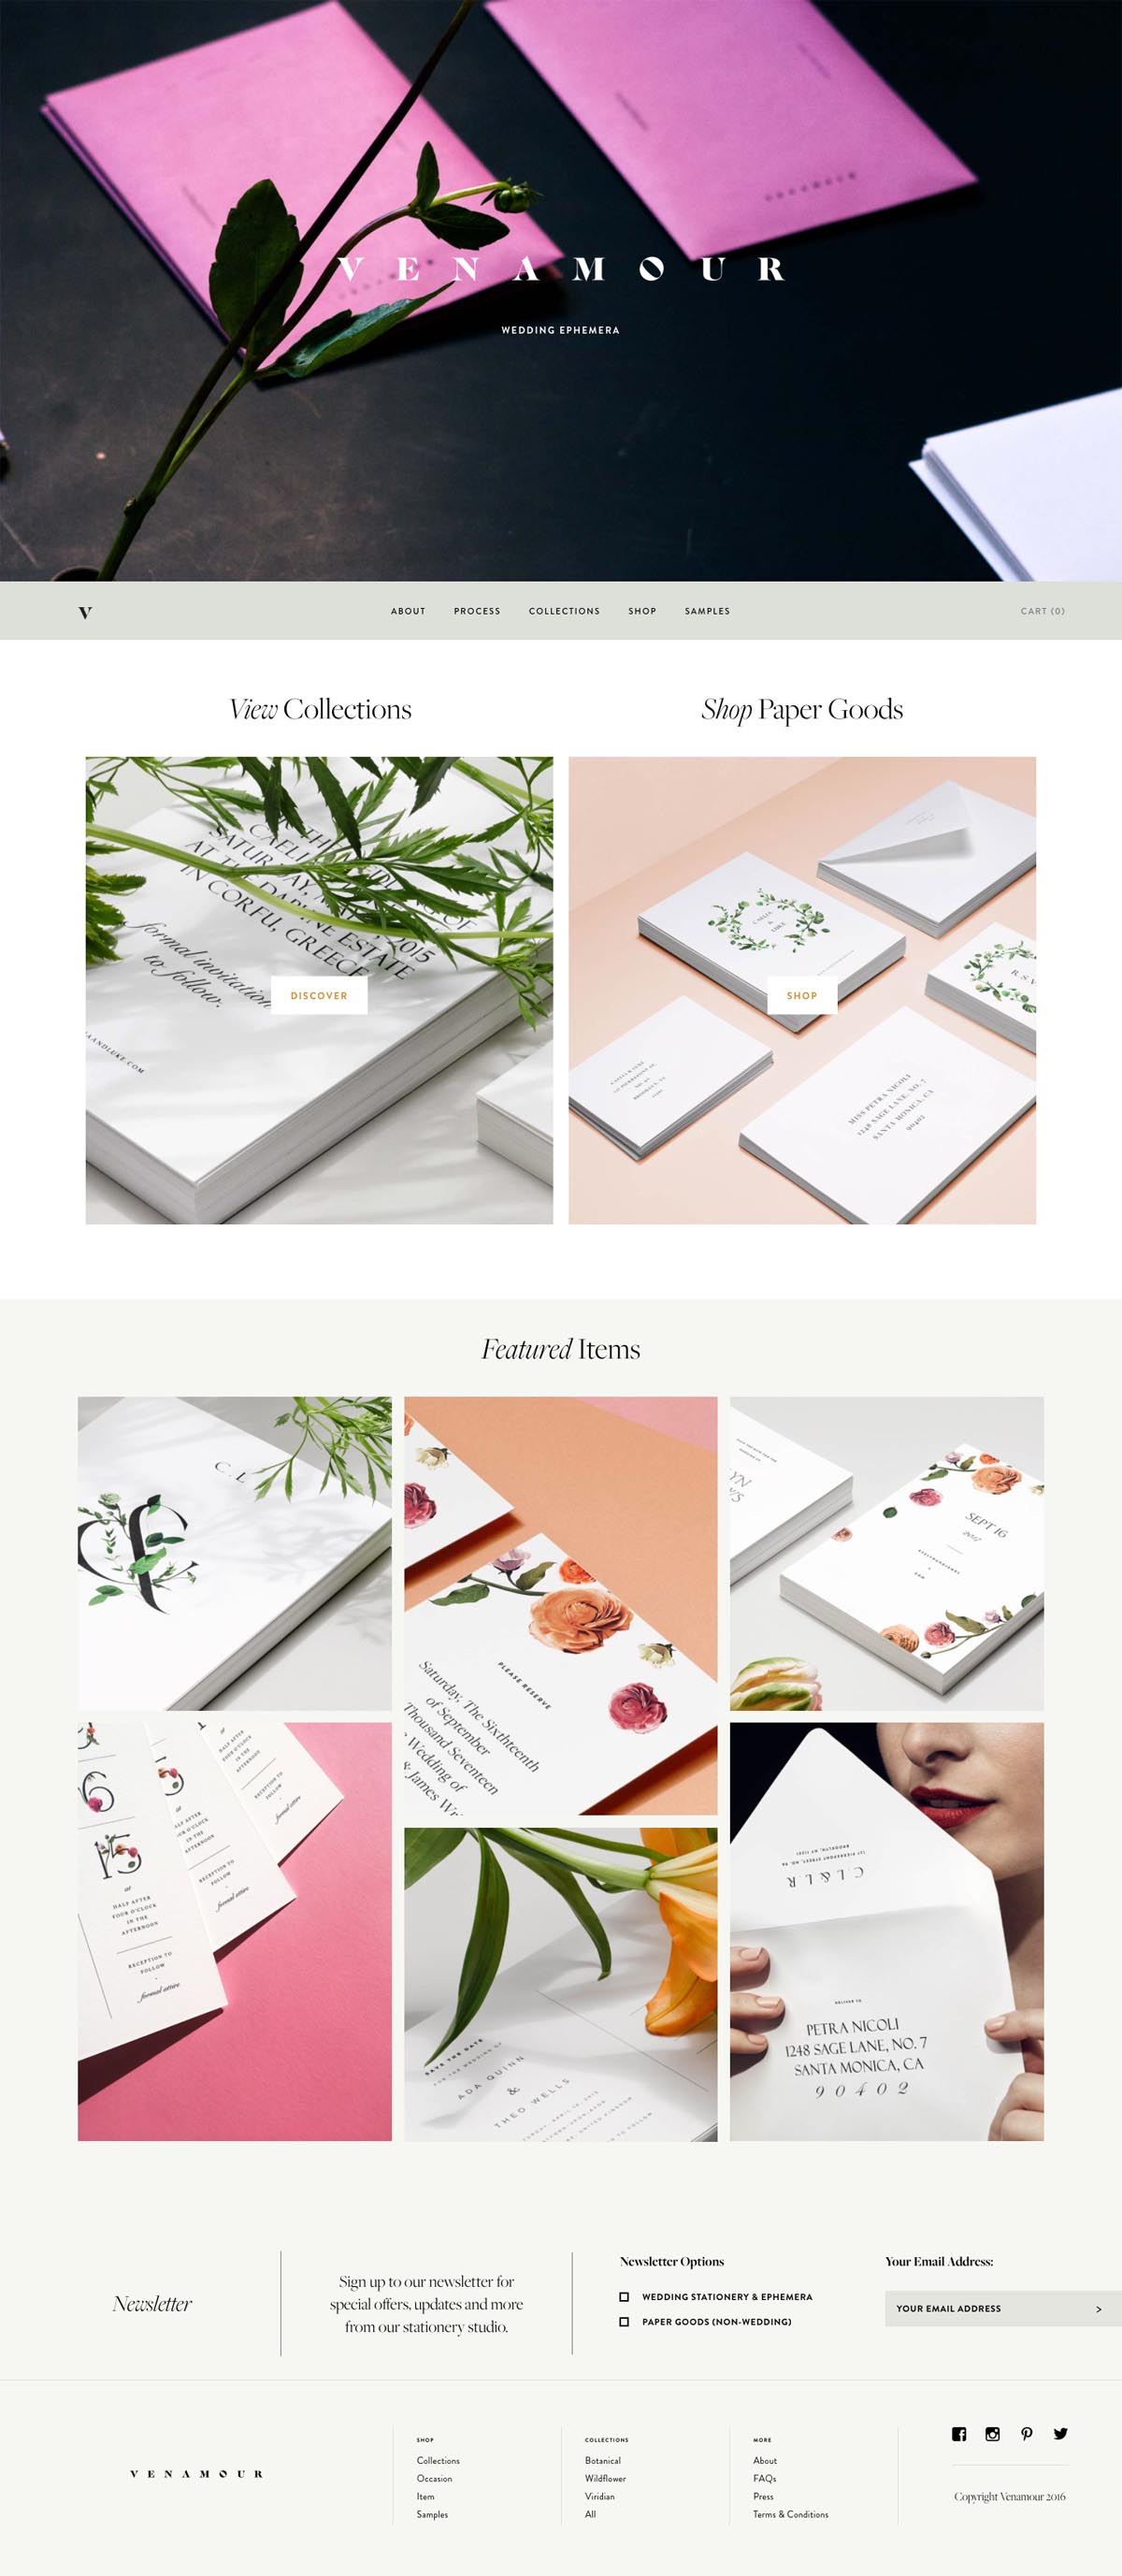 eCommerce website: Venamour